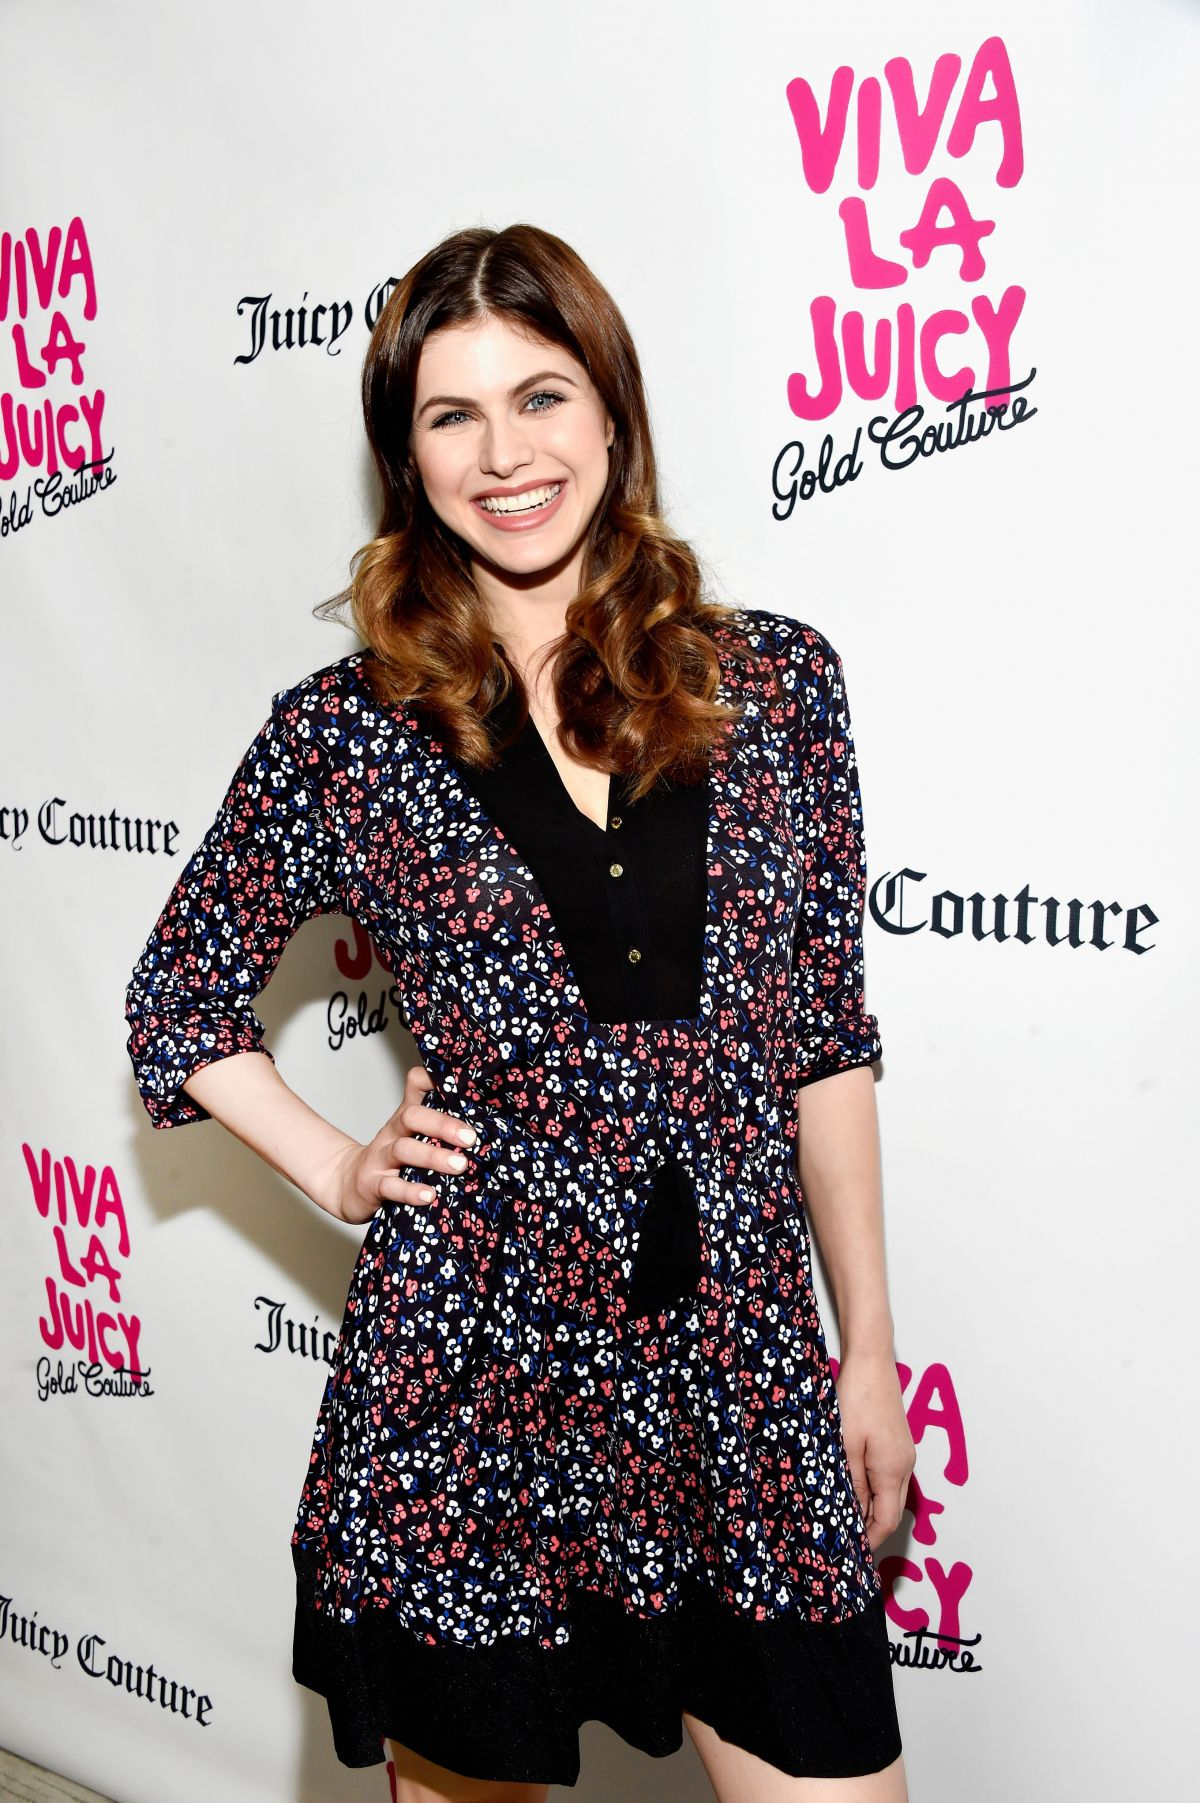 ALEXANDRA DADDARIO at Viva La Juicy Gold Couture Launch